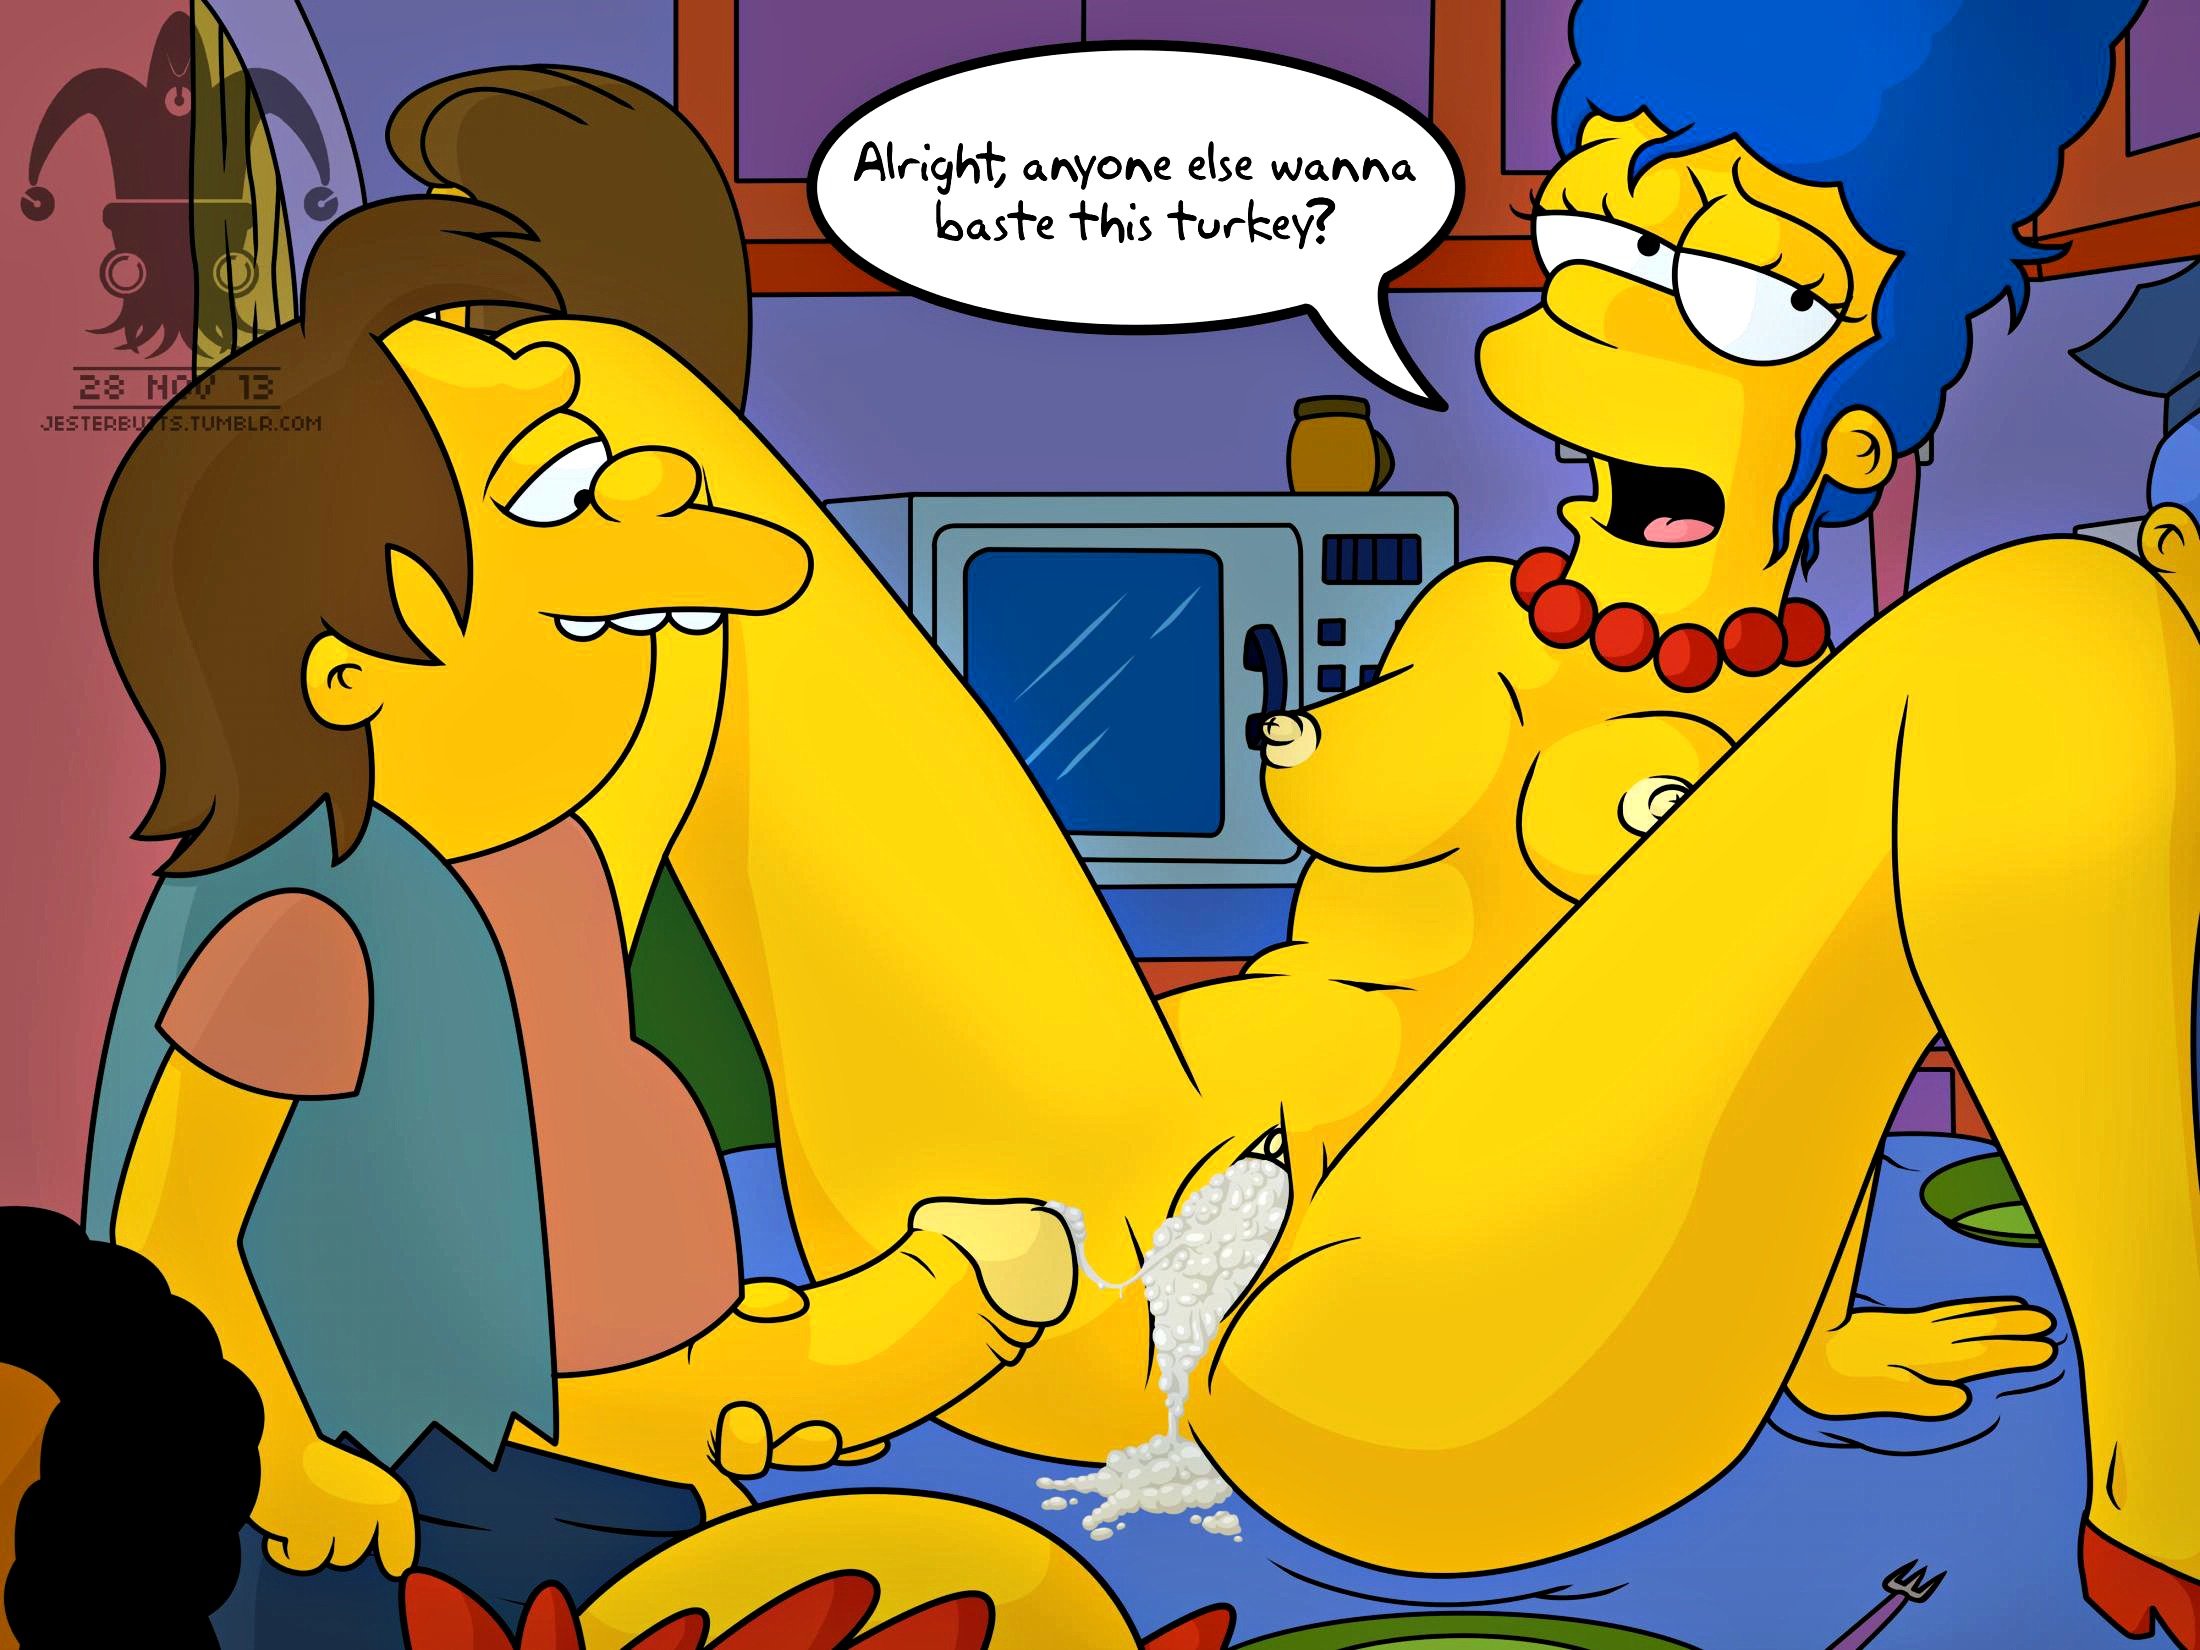 Video porno simpson 3d adult pornostar